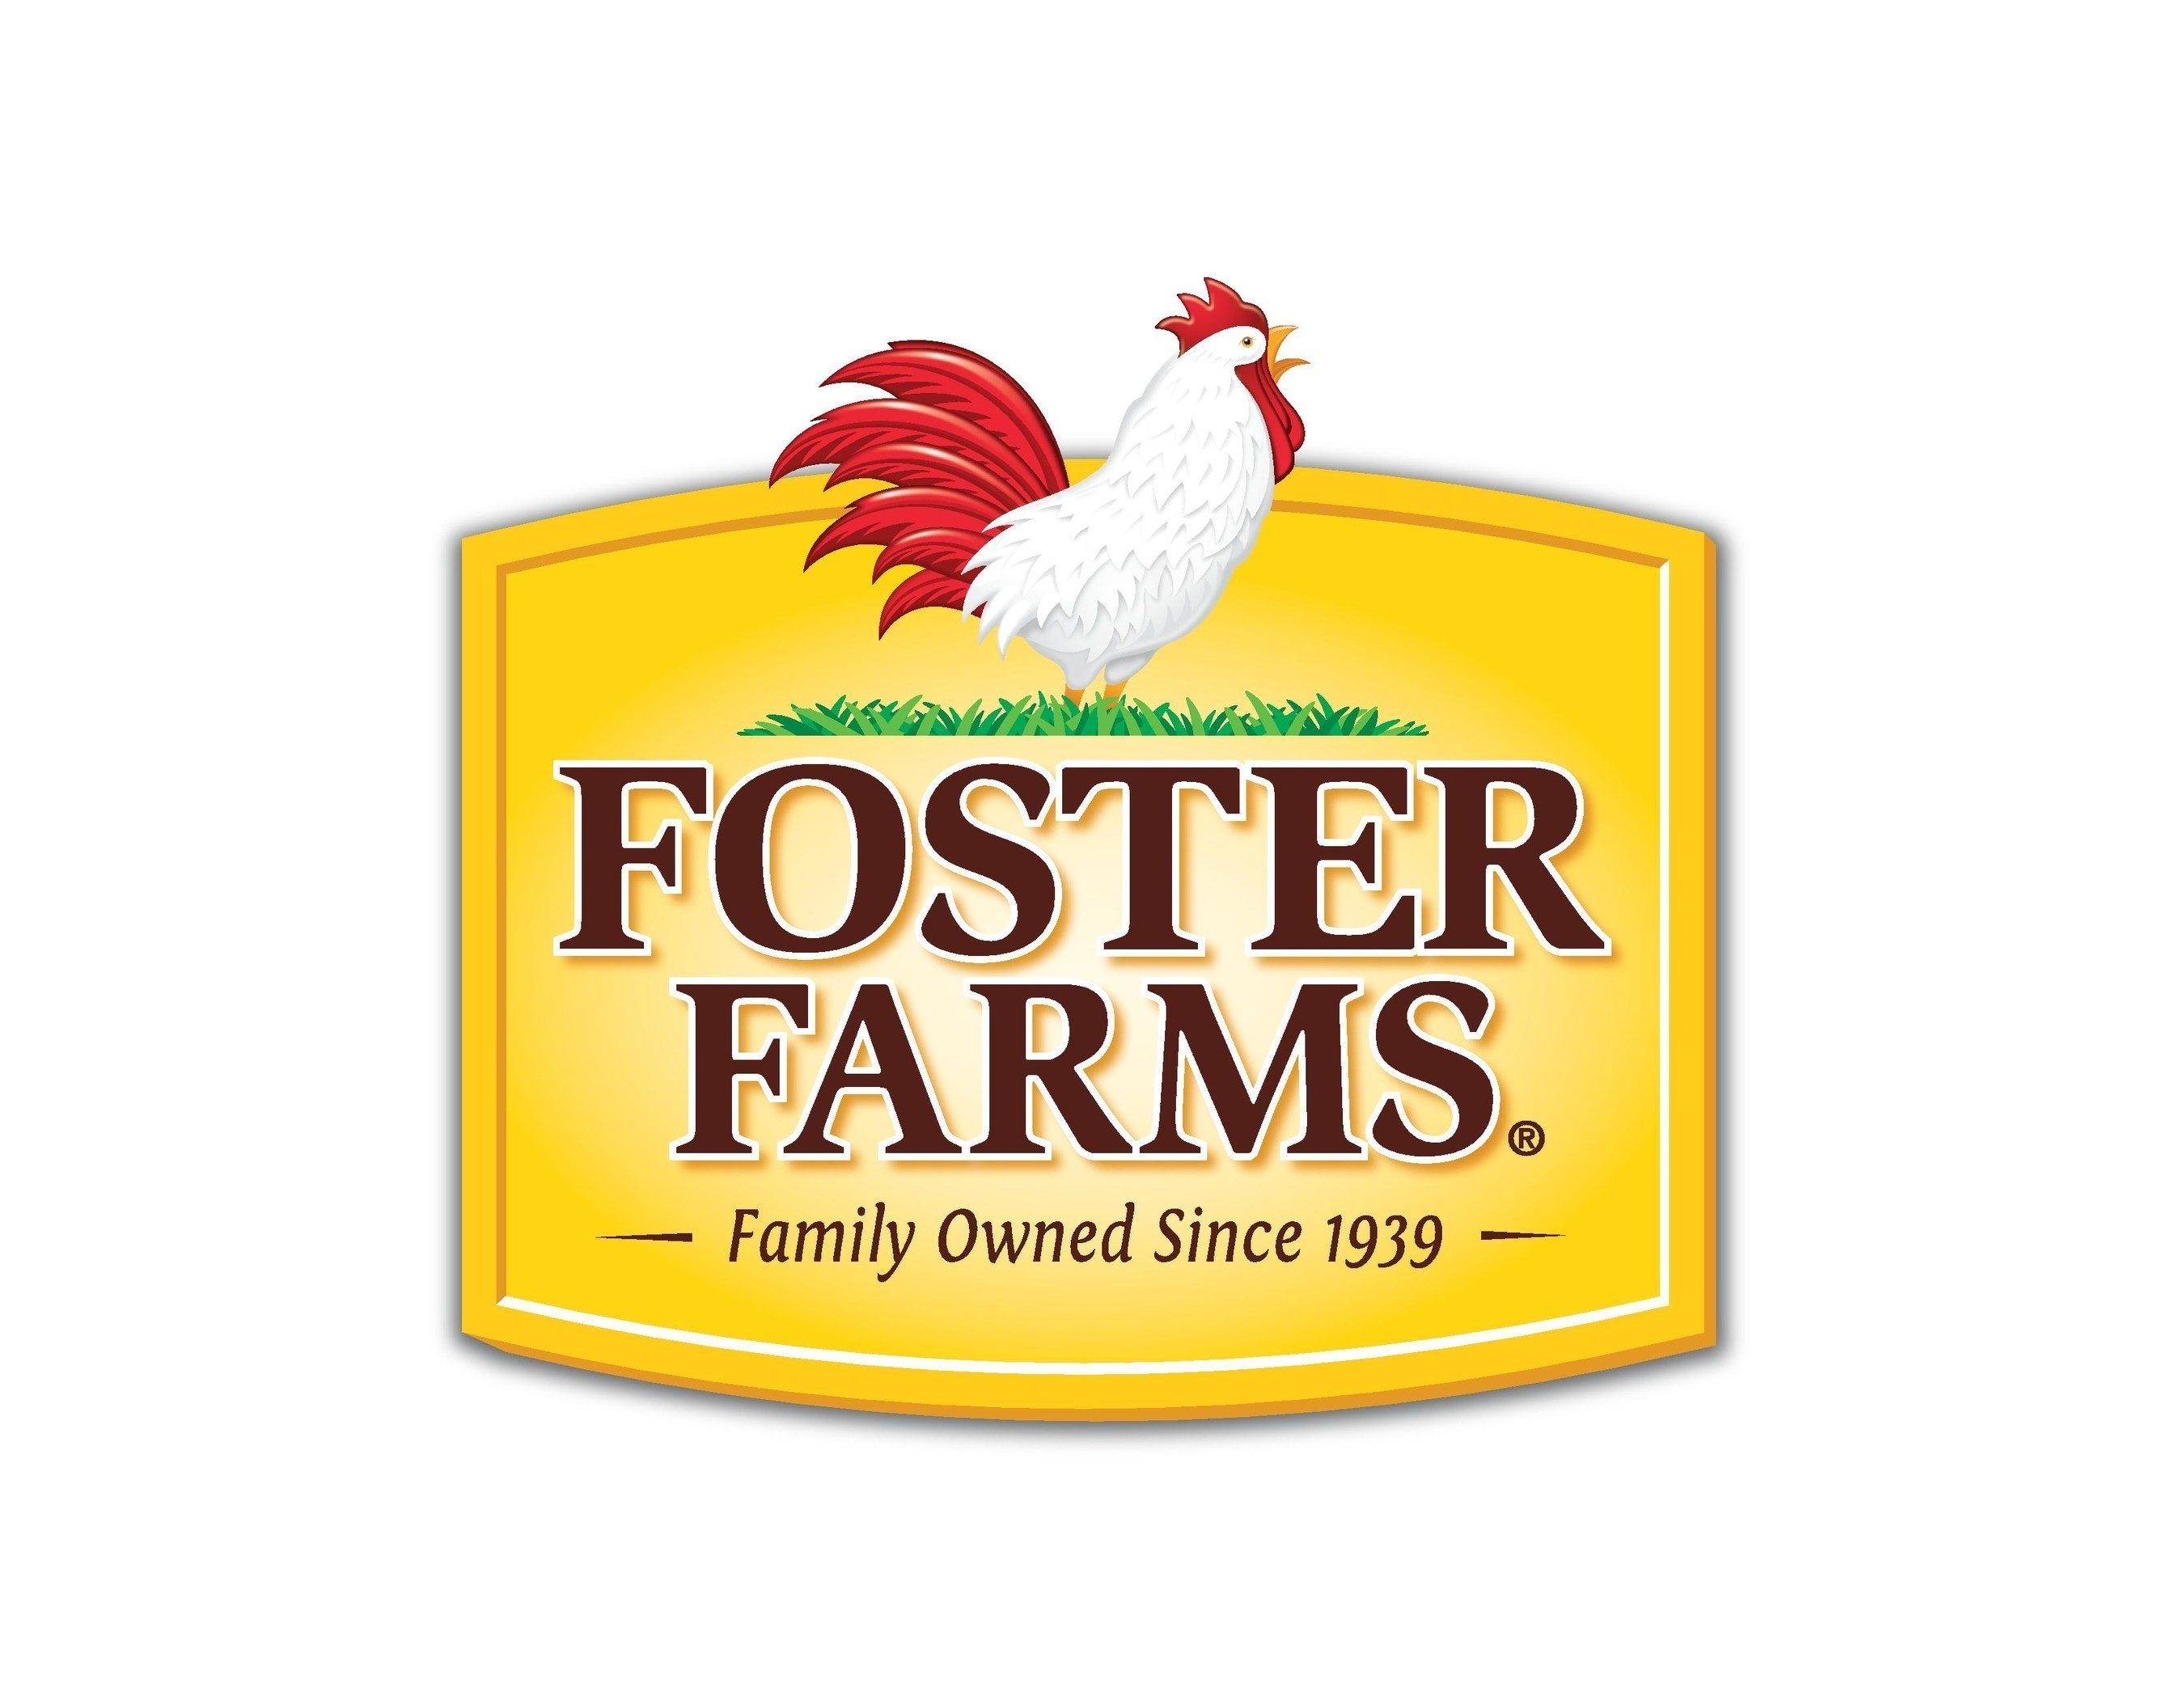 Foster Farms - Family Owned Since 1939